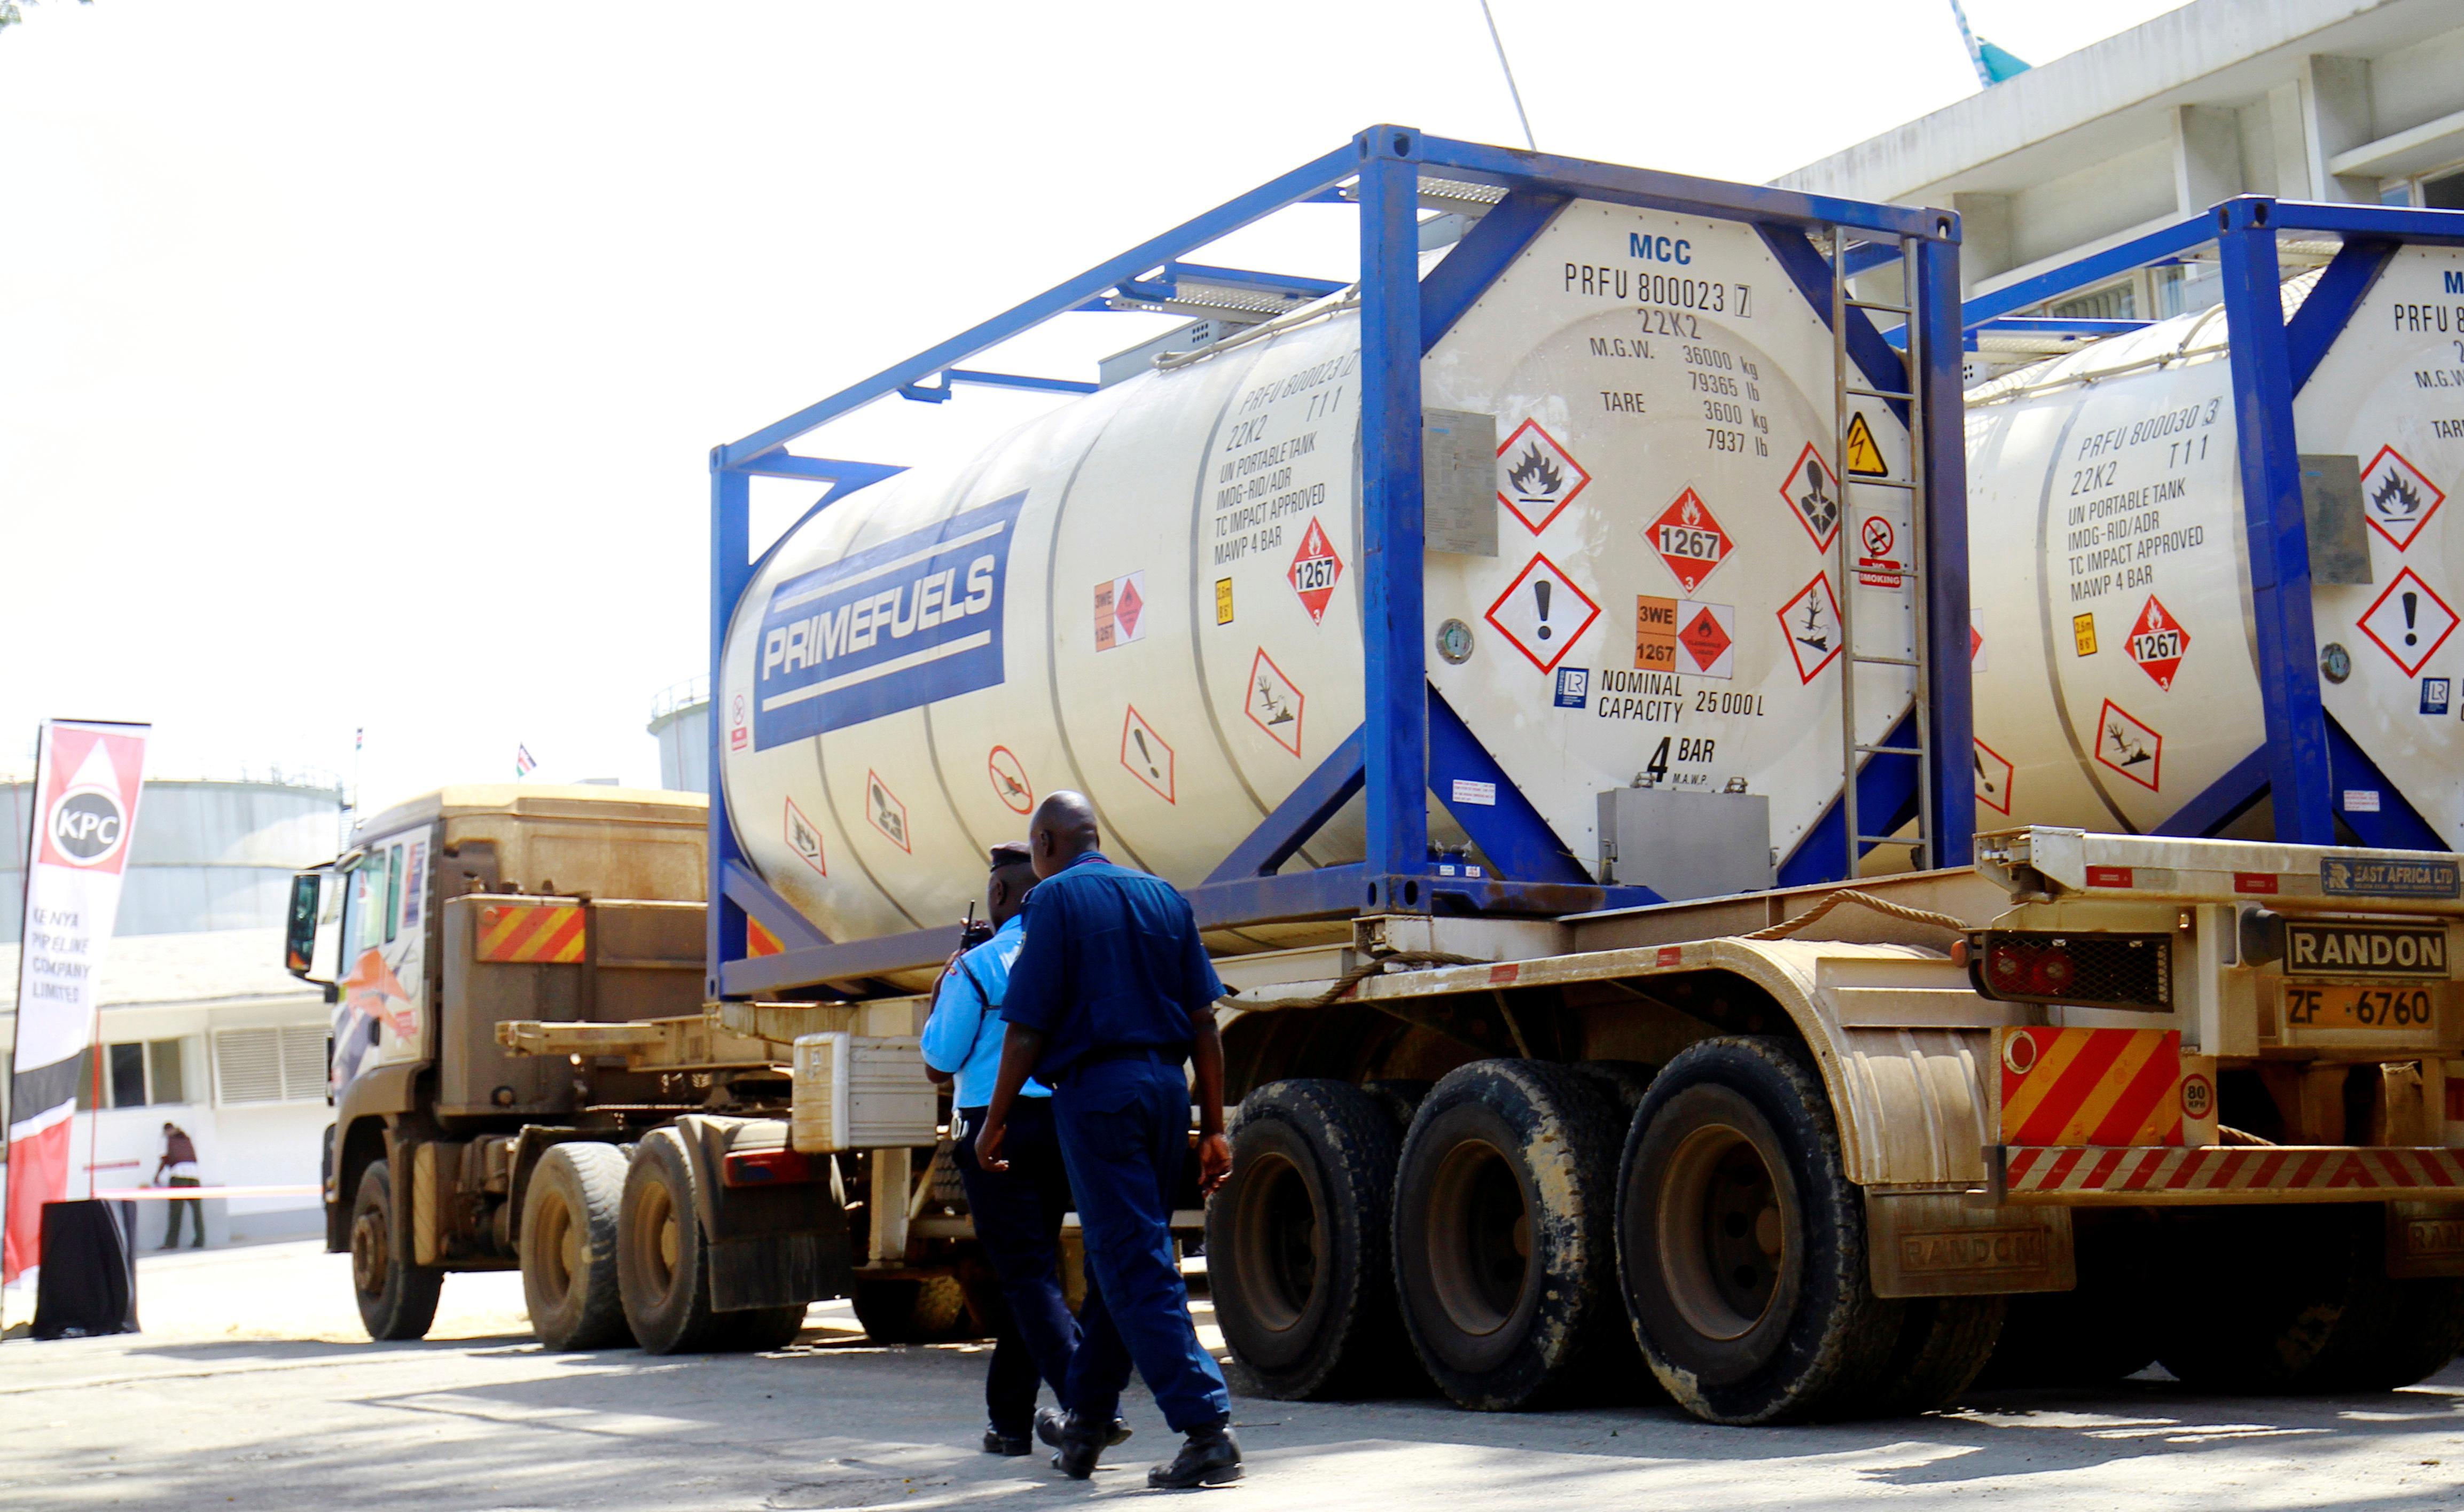 Kenya set for first crude oil exports after striking ChemChina deal